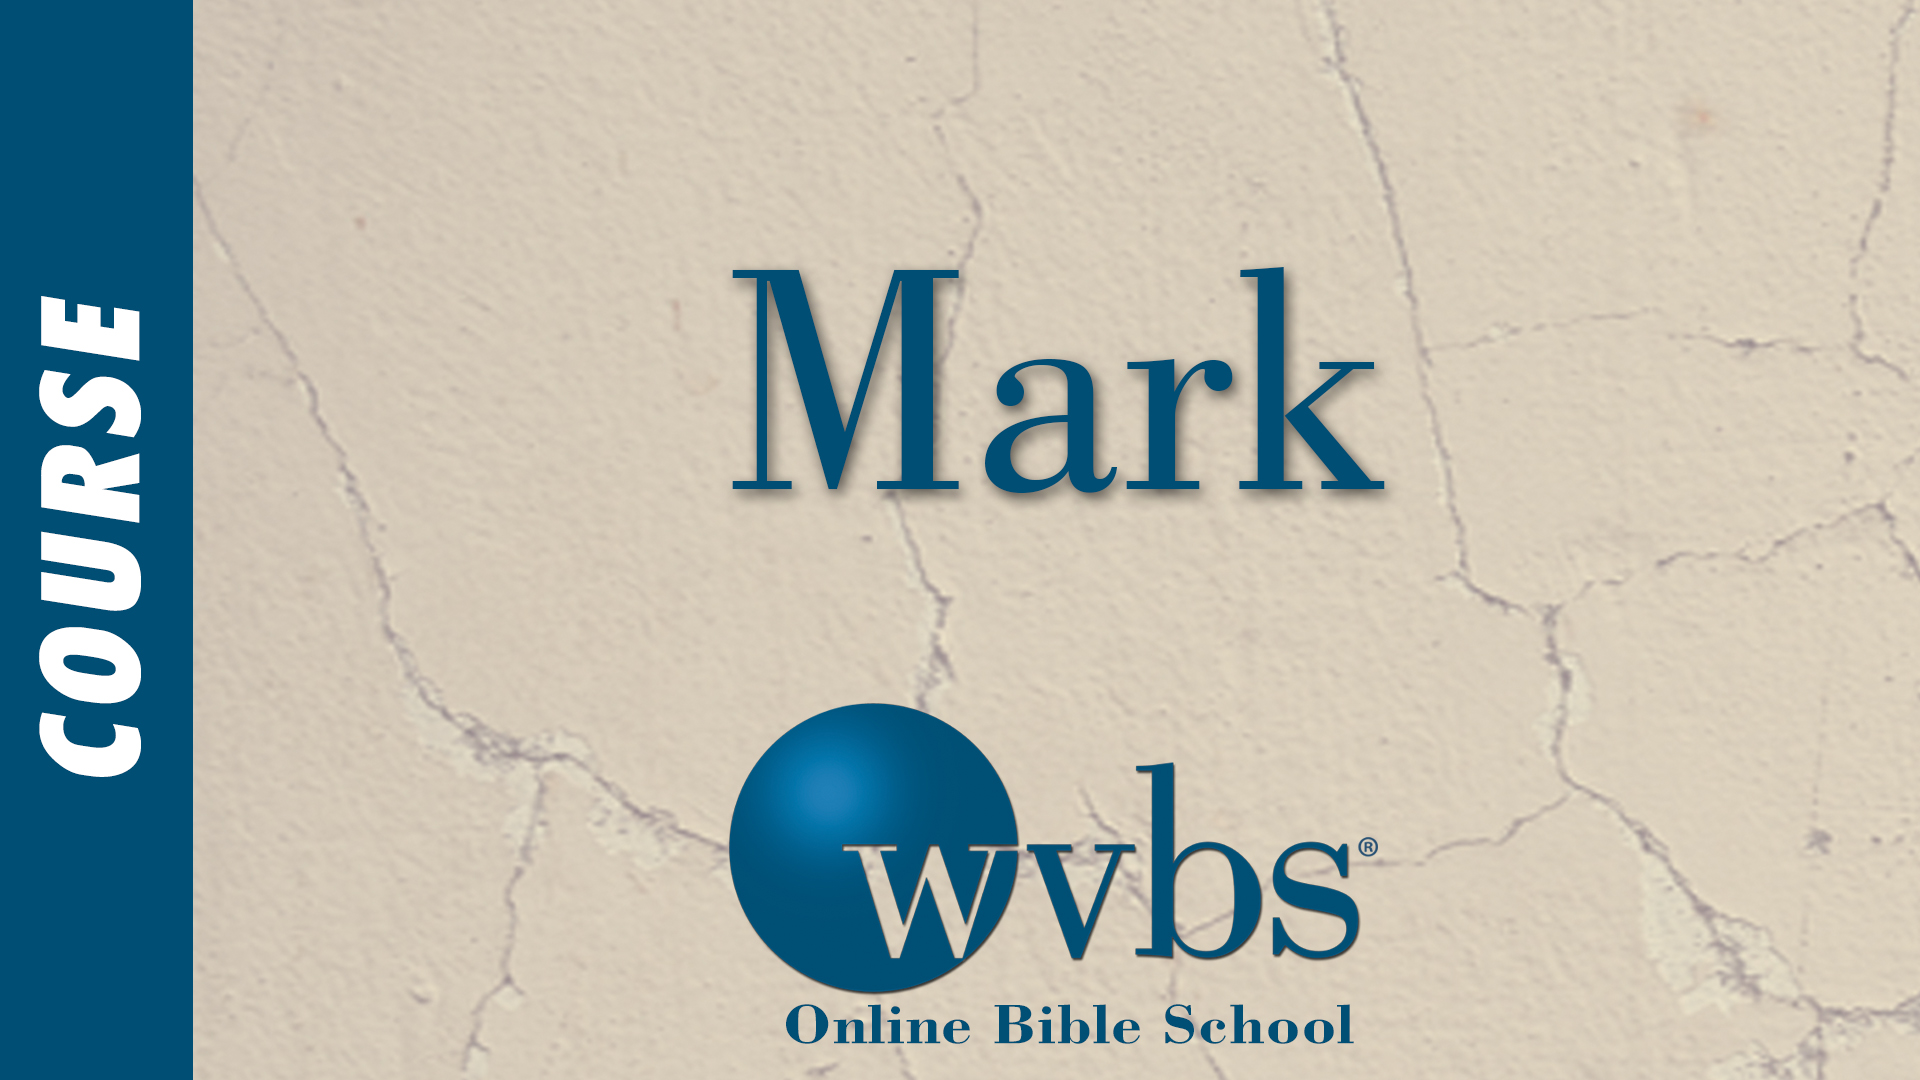 Mark (Online Bible School)